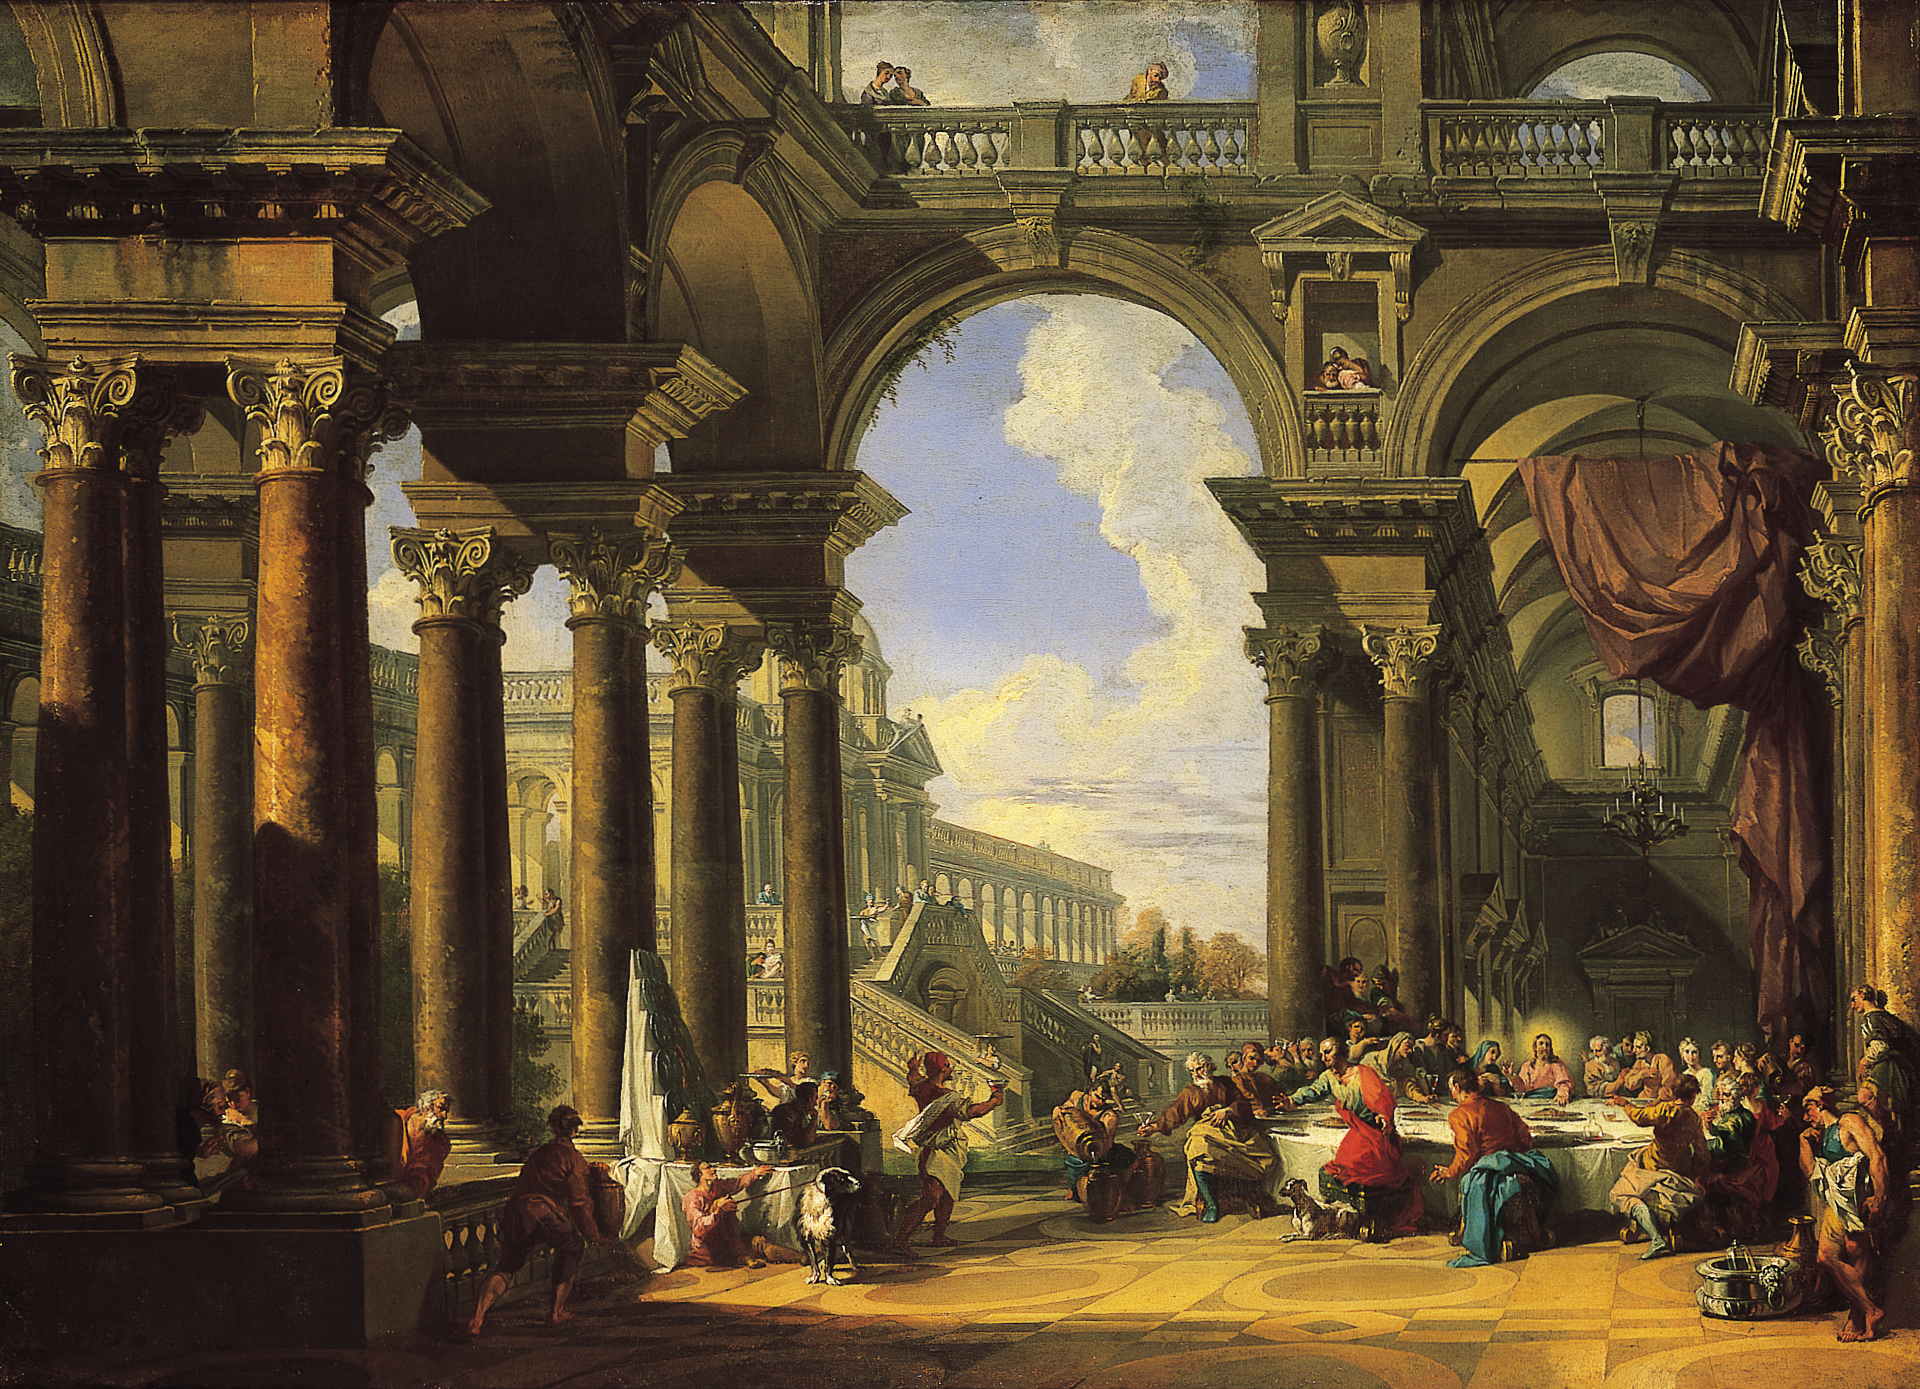 File:Giovanni Paolo Panini The Wedding at Cana, about 1725.jpg